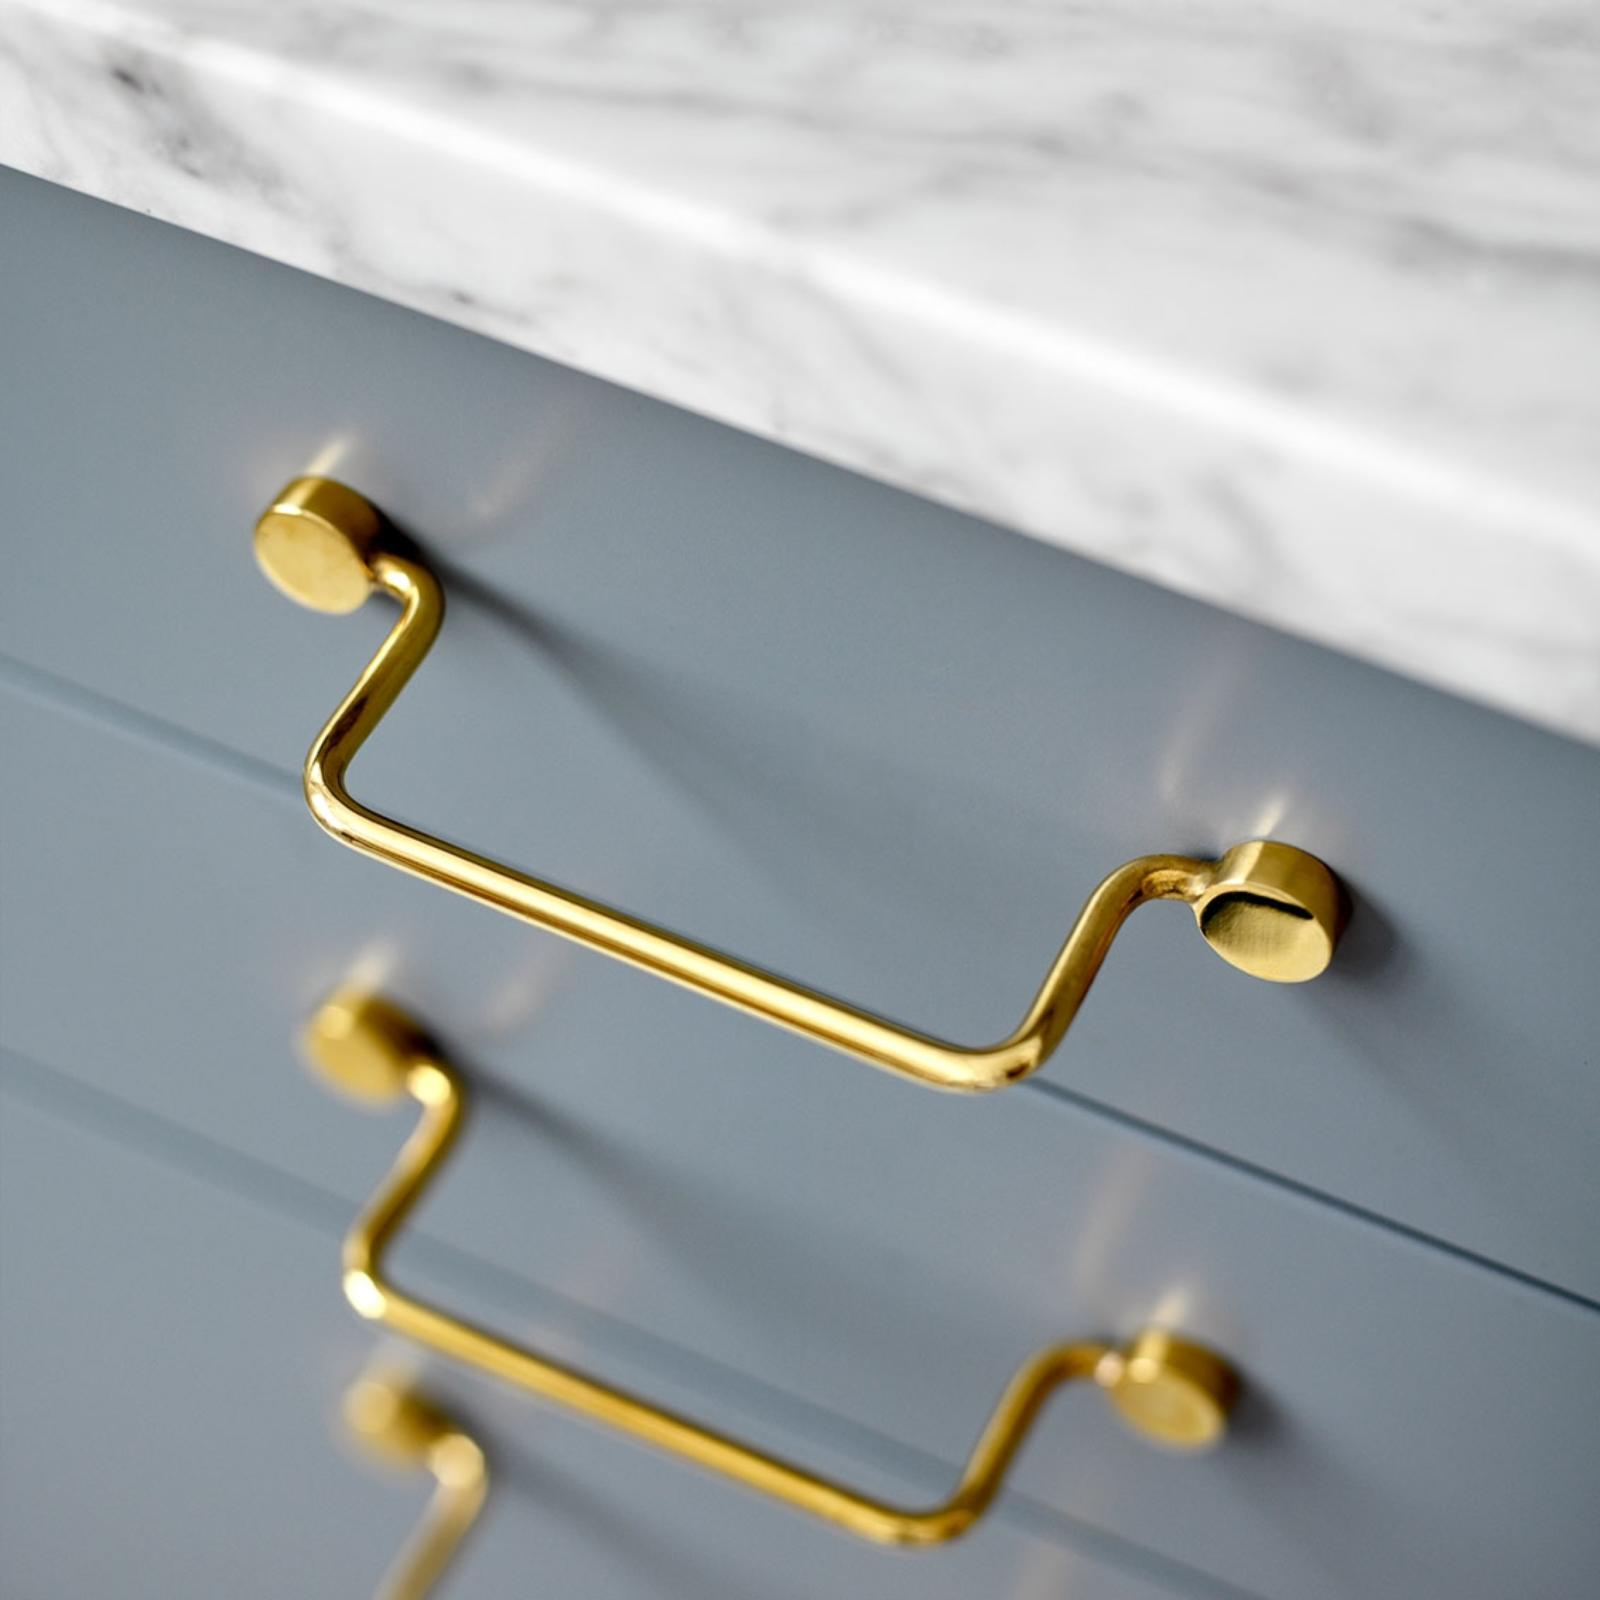 Classic handles in brass from Superfront, mounted on grey kitchen drawers